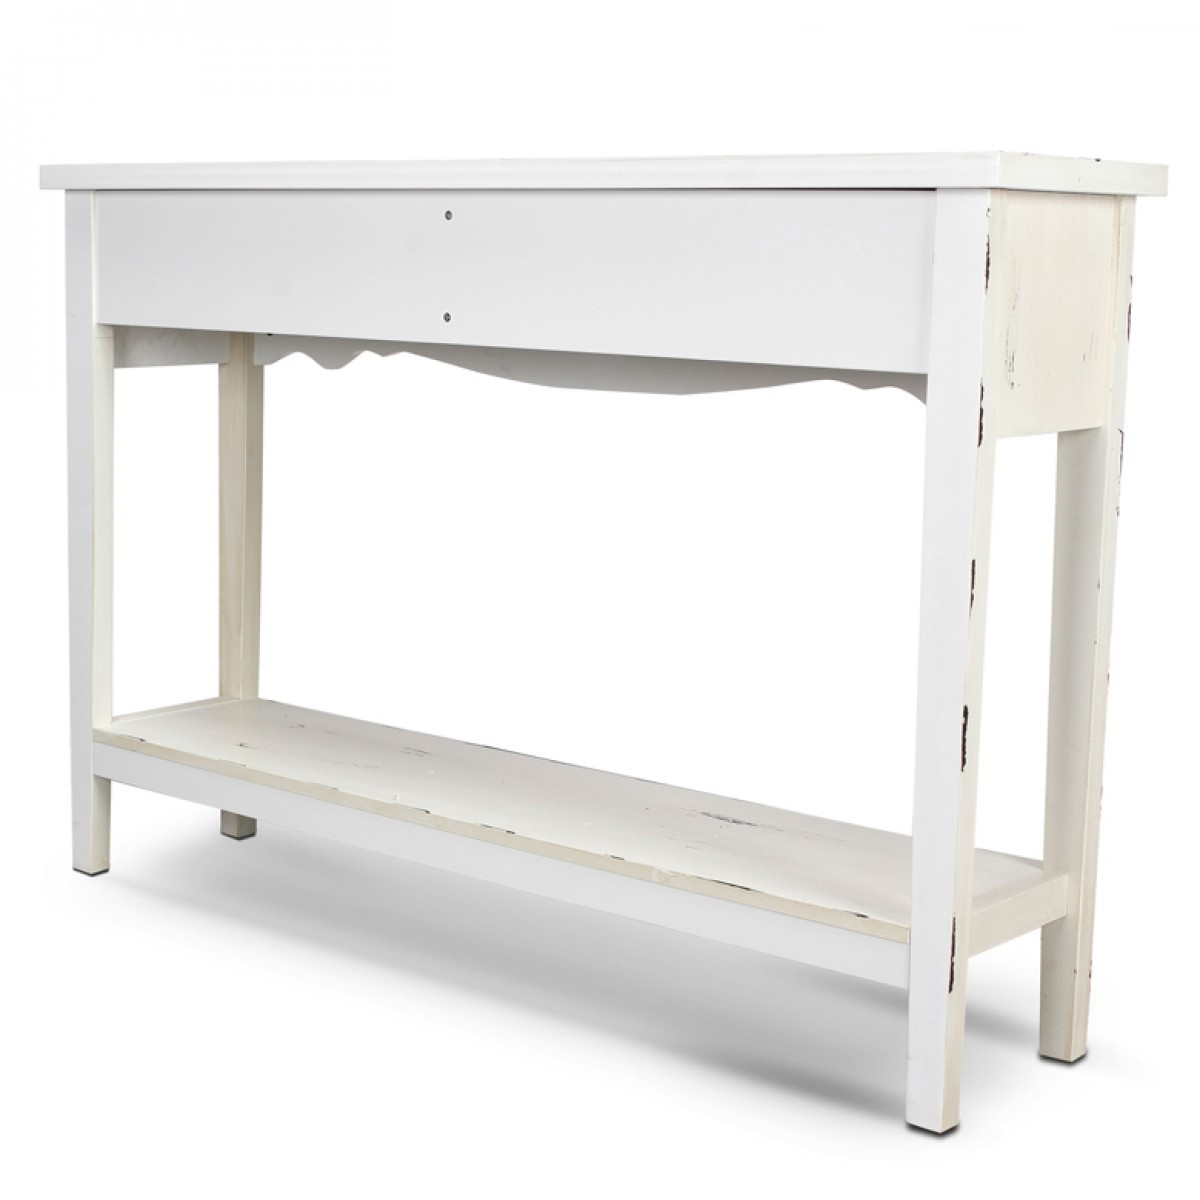 Belleze Hand Painted Distressed Antique White Finish Accent Console Inside Antique White Distressed Console Tables (View 23 of 30)